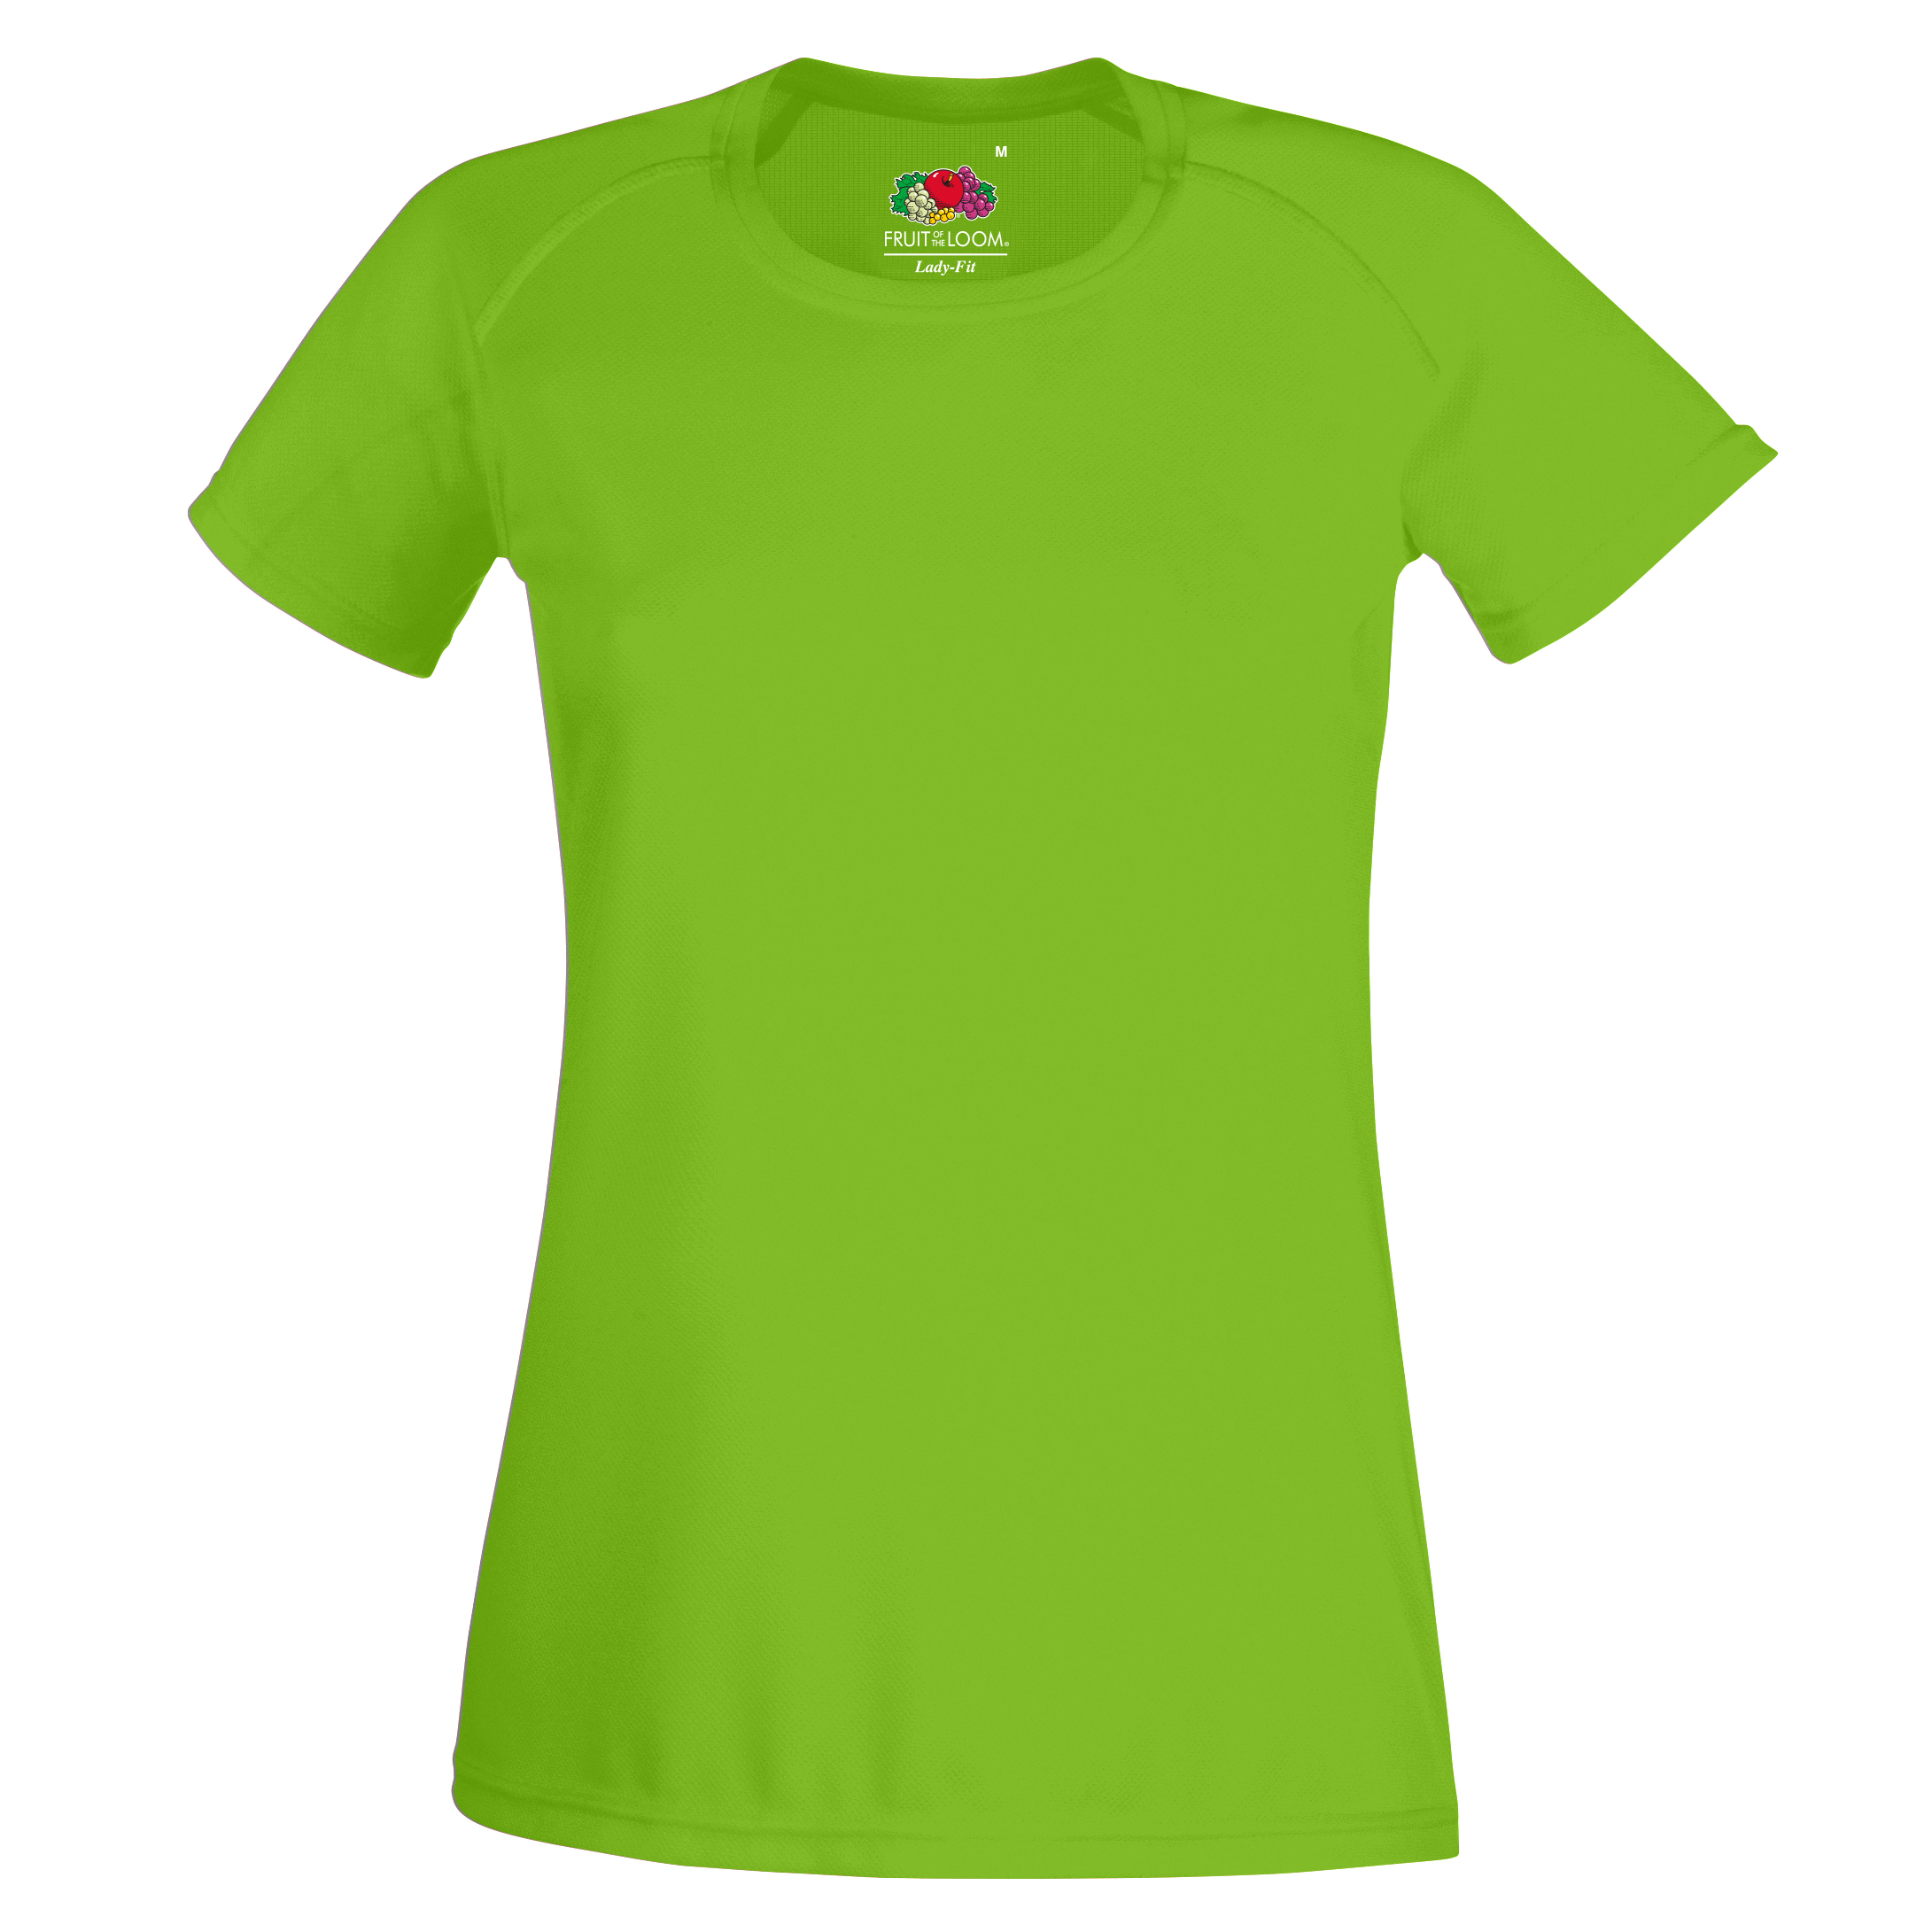 Cheap Fake Free Shipping 100% Authentic Womens Performance T-Shirt Fruit Of The Loom Outlet Supply Zhf80v8